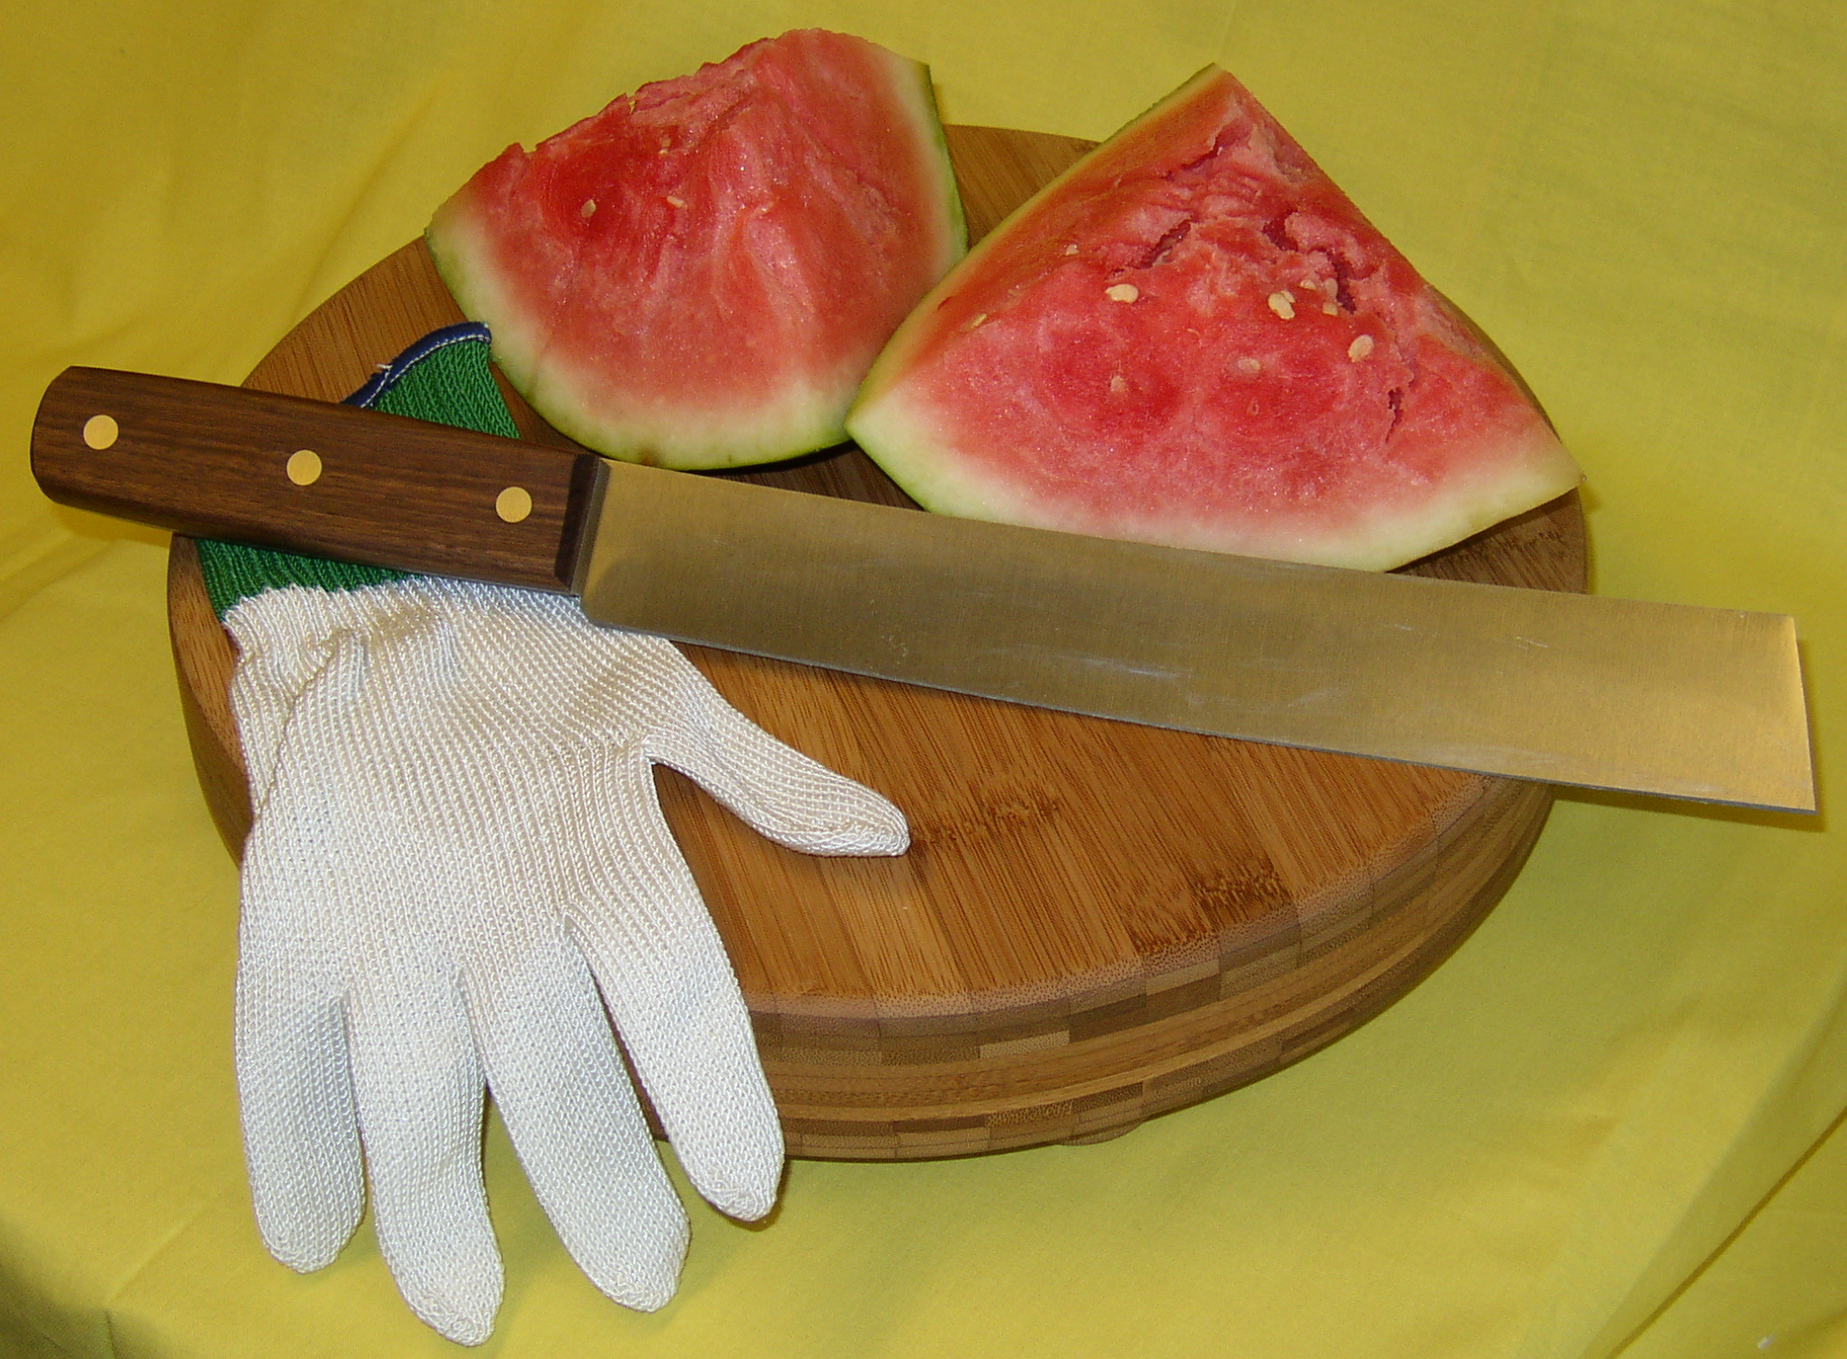 Watermelon knife and protective Kevlar glove